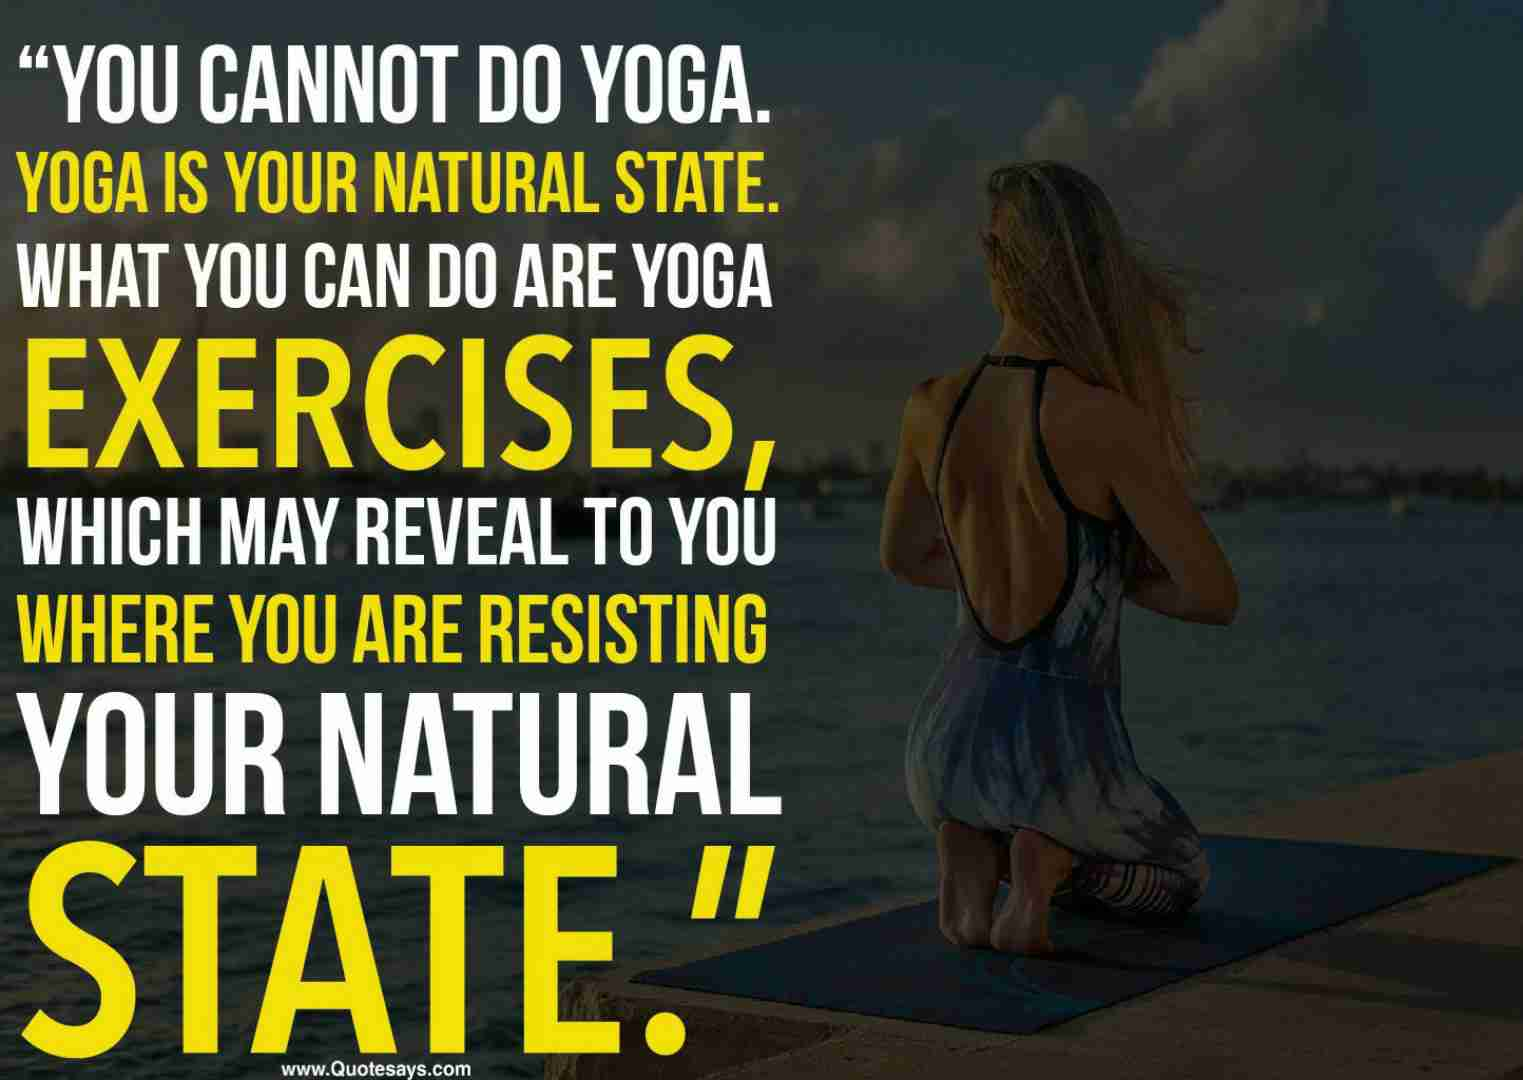 Yoga quotes. Inspirational yoga quotes